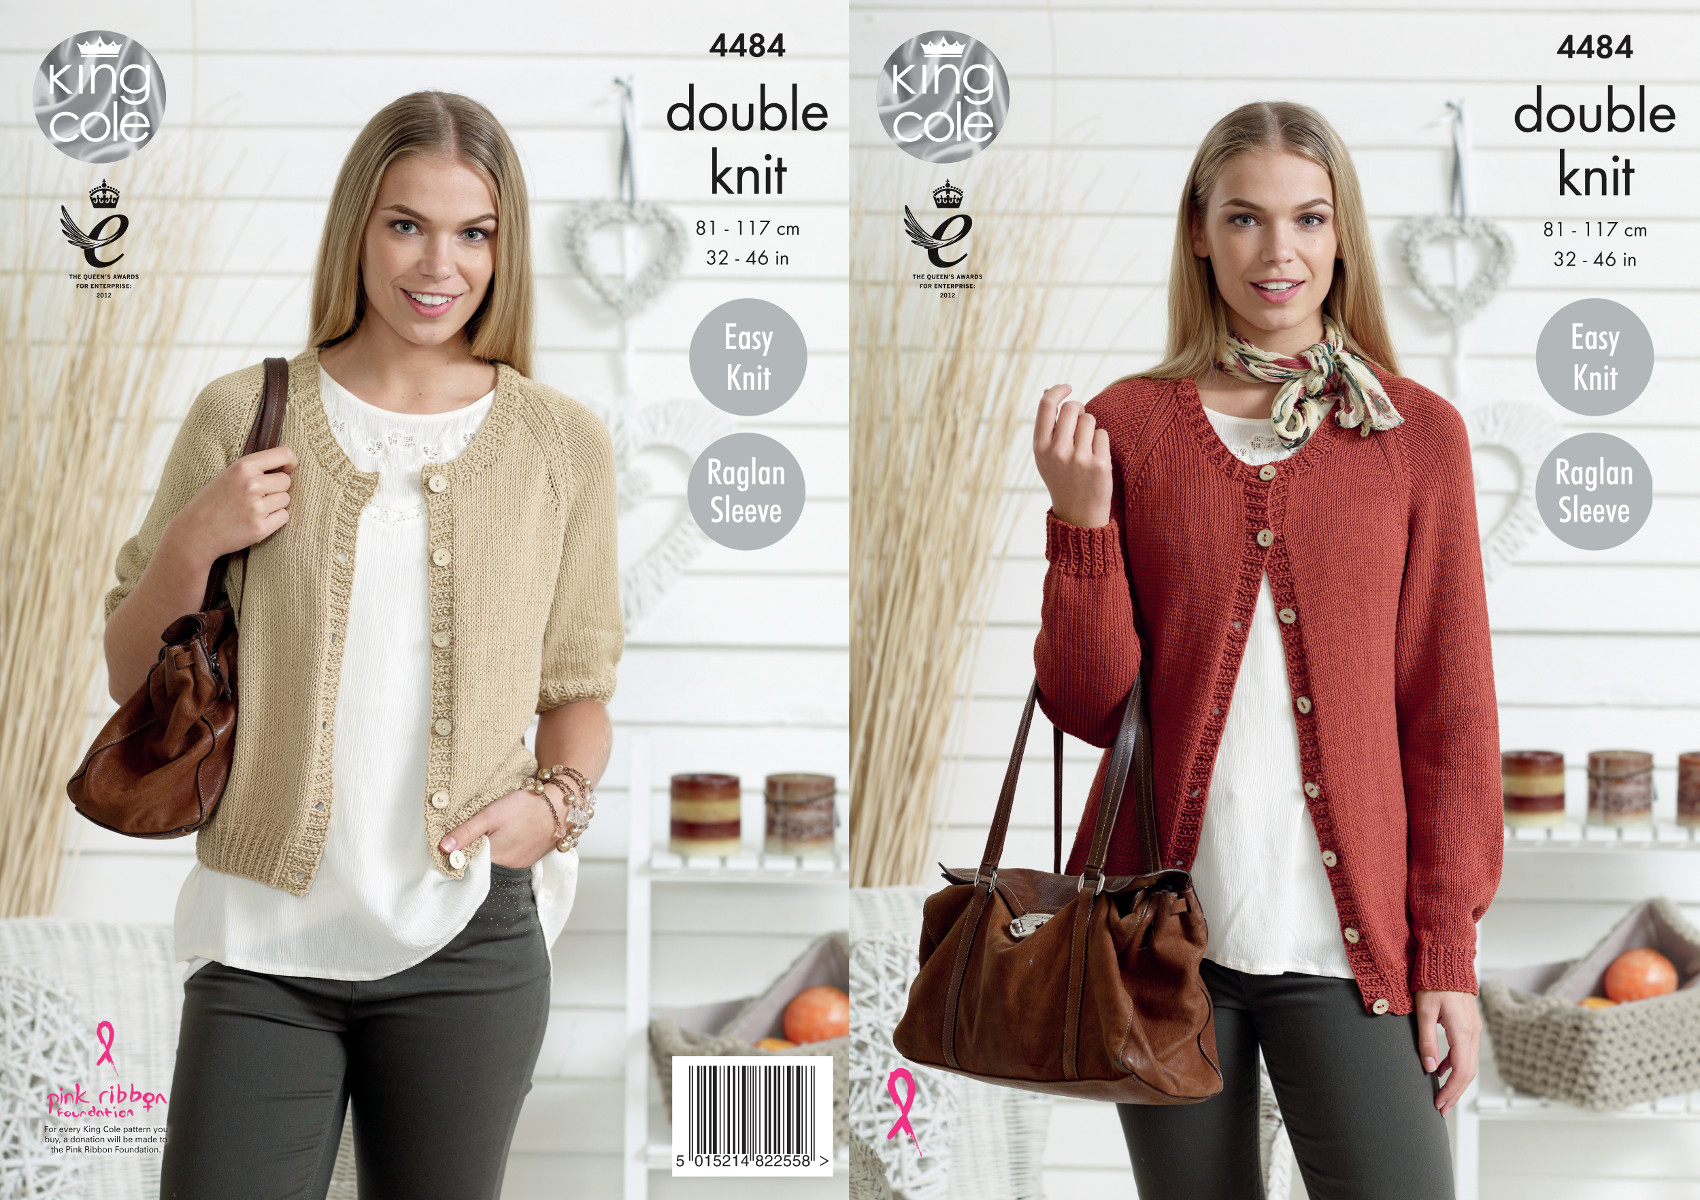 Knitting Jumper Pattern : Easy knit ladies raglan sleeve cardigans knitting pattern king